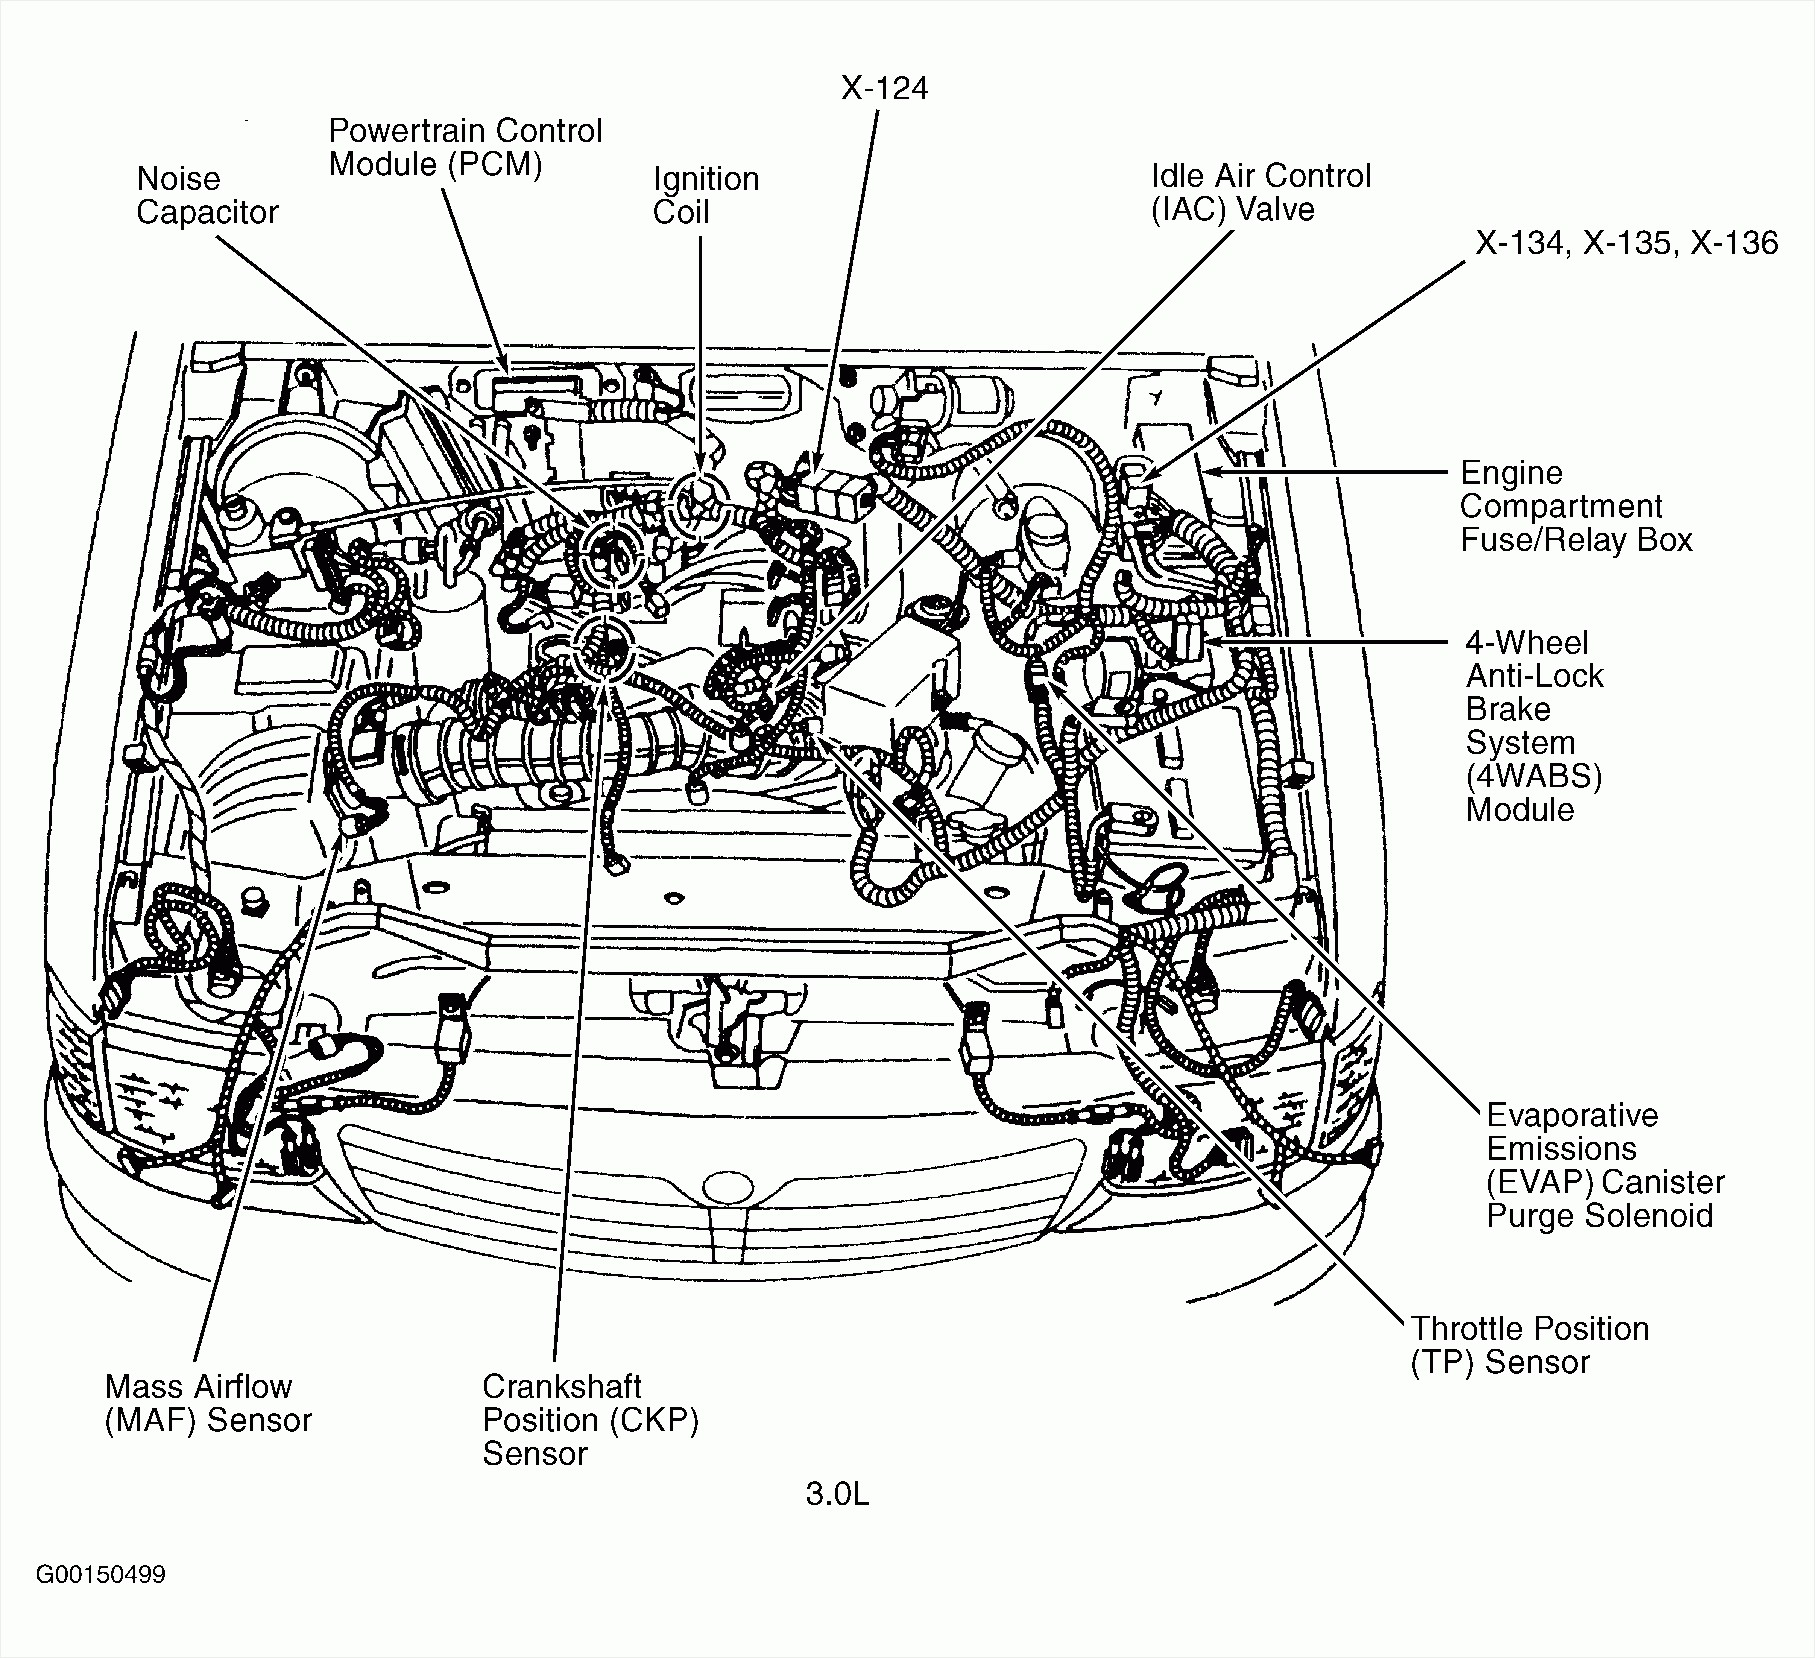 Mitsubishi 3 0 V6 Engine Diagram - Free Wiring Diagram For You • on wiring diagram for toyota avalon, wiring diagram for mazda 323, wiring diagram for honda accord, wiring diagram for toyota pickup, wiring diagram for chevrolet malibu, wiring diagram for lincoln navigator, wiring diagram for jeep commander, wiring diagram for toyota tundra, wiring diagram for lincoln town car, wiring diagram for ford windstar, wiring diagram for nissan pathfinder, wiring diagram for buick park avenue, wiring diagram for ford explorer, wiring diagram for jeep tj, wiring diagram for isuzu axiom, wiring diagram for plymouth breeze, wiring diagram for hyundai accent, wiring diagram for dodge dakota, wiring diagram for pontiac bonneville, wiring diagram for jaguar xk8,